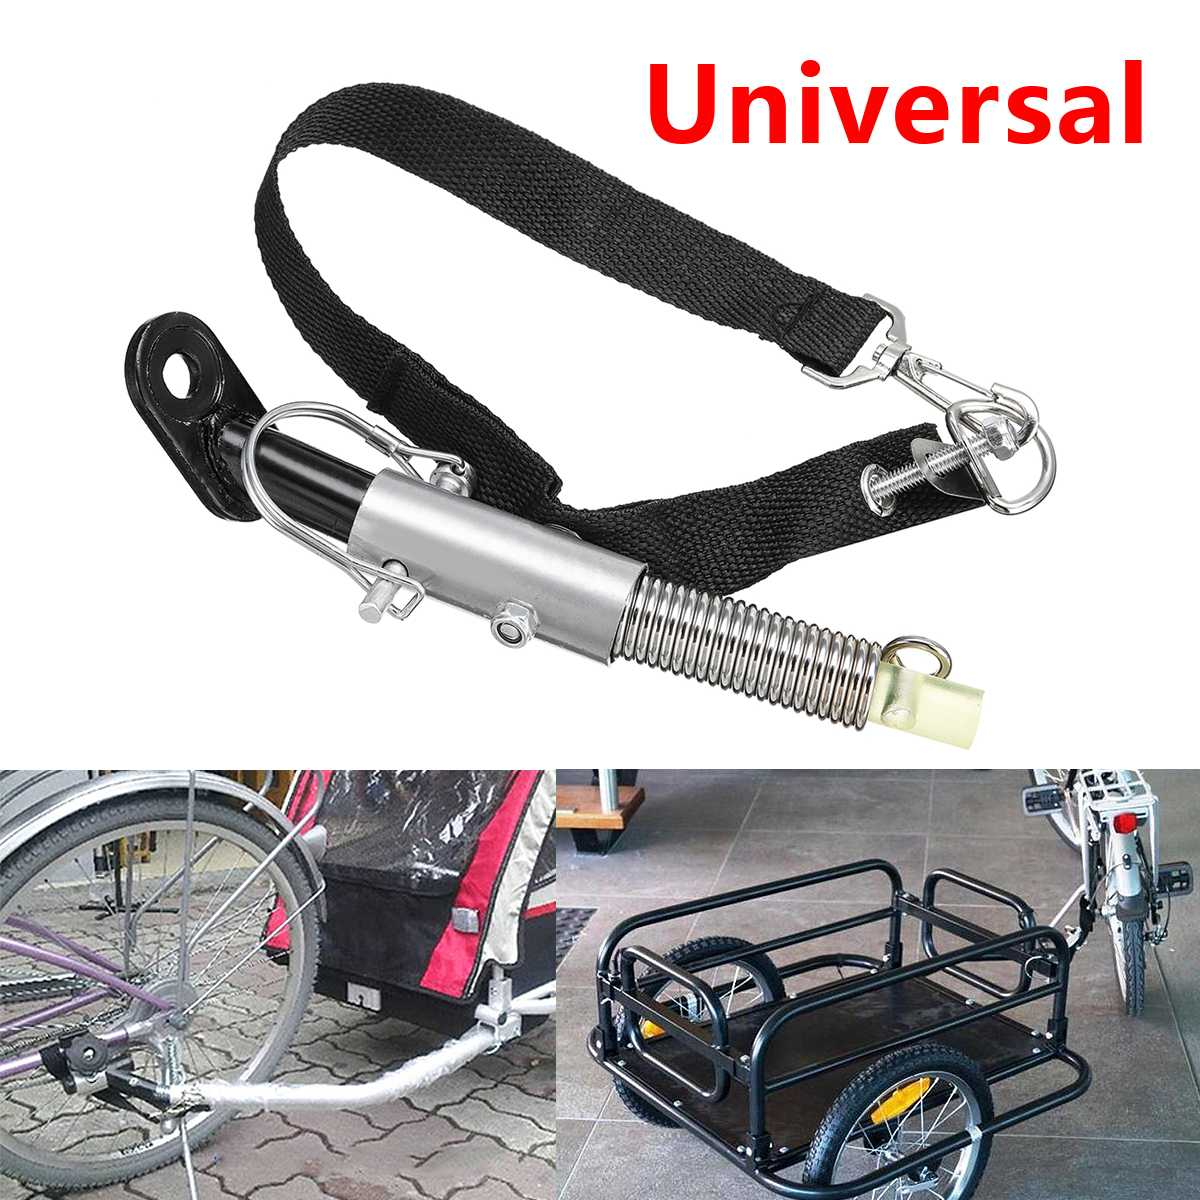 Bike Trailer Steel Linker Bicycle Trailer Classic Hitch Universal Model Baby Pet Coupler Hitch Linker